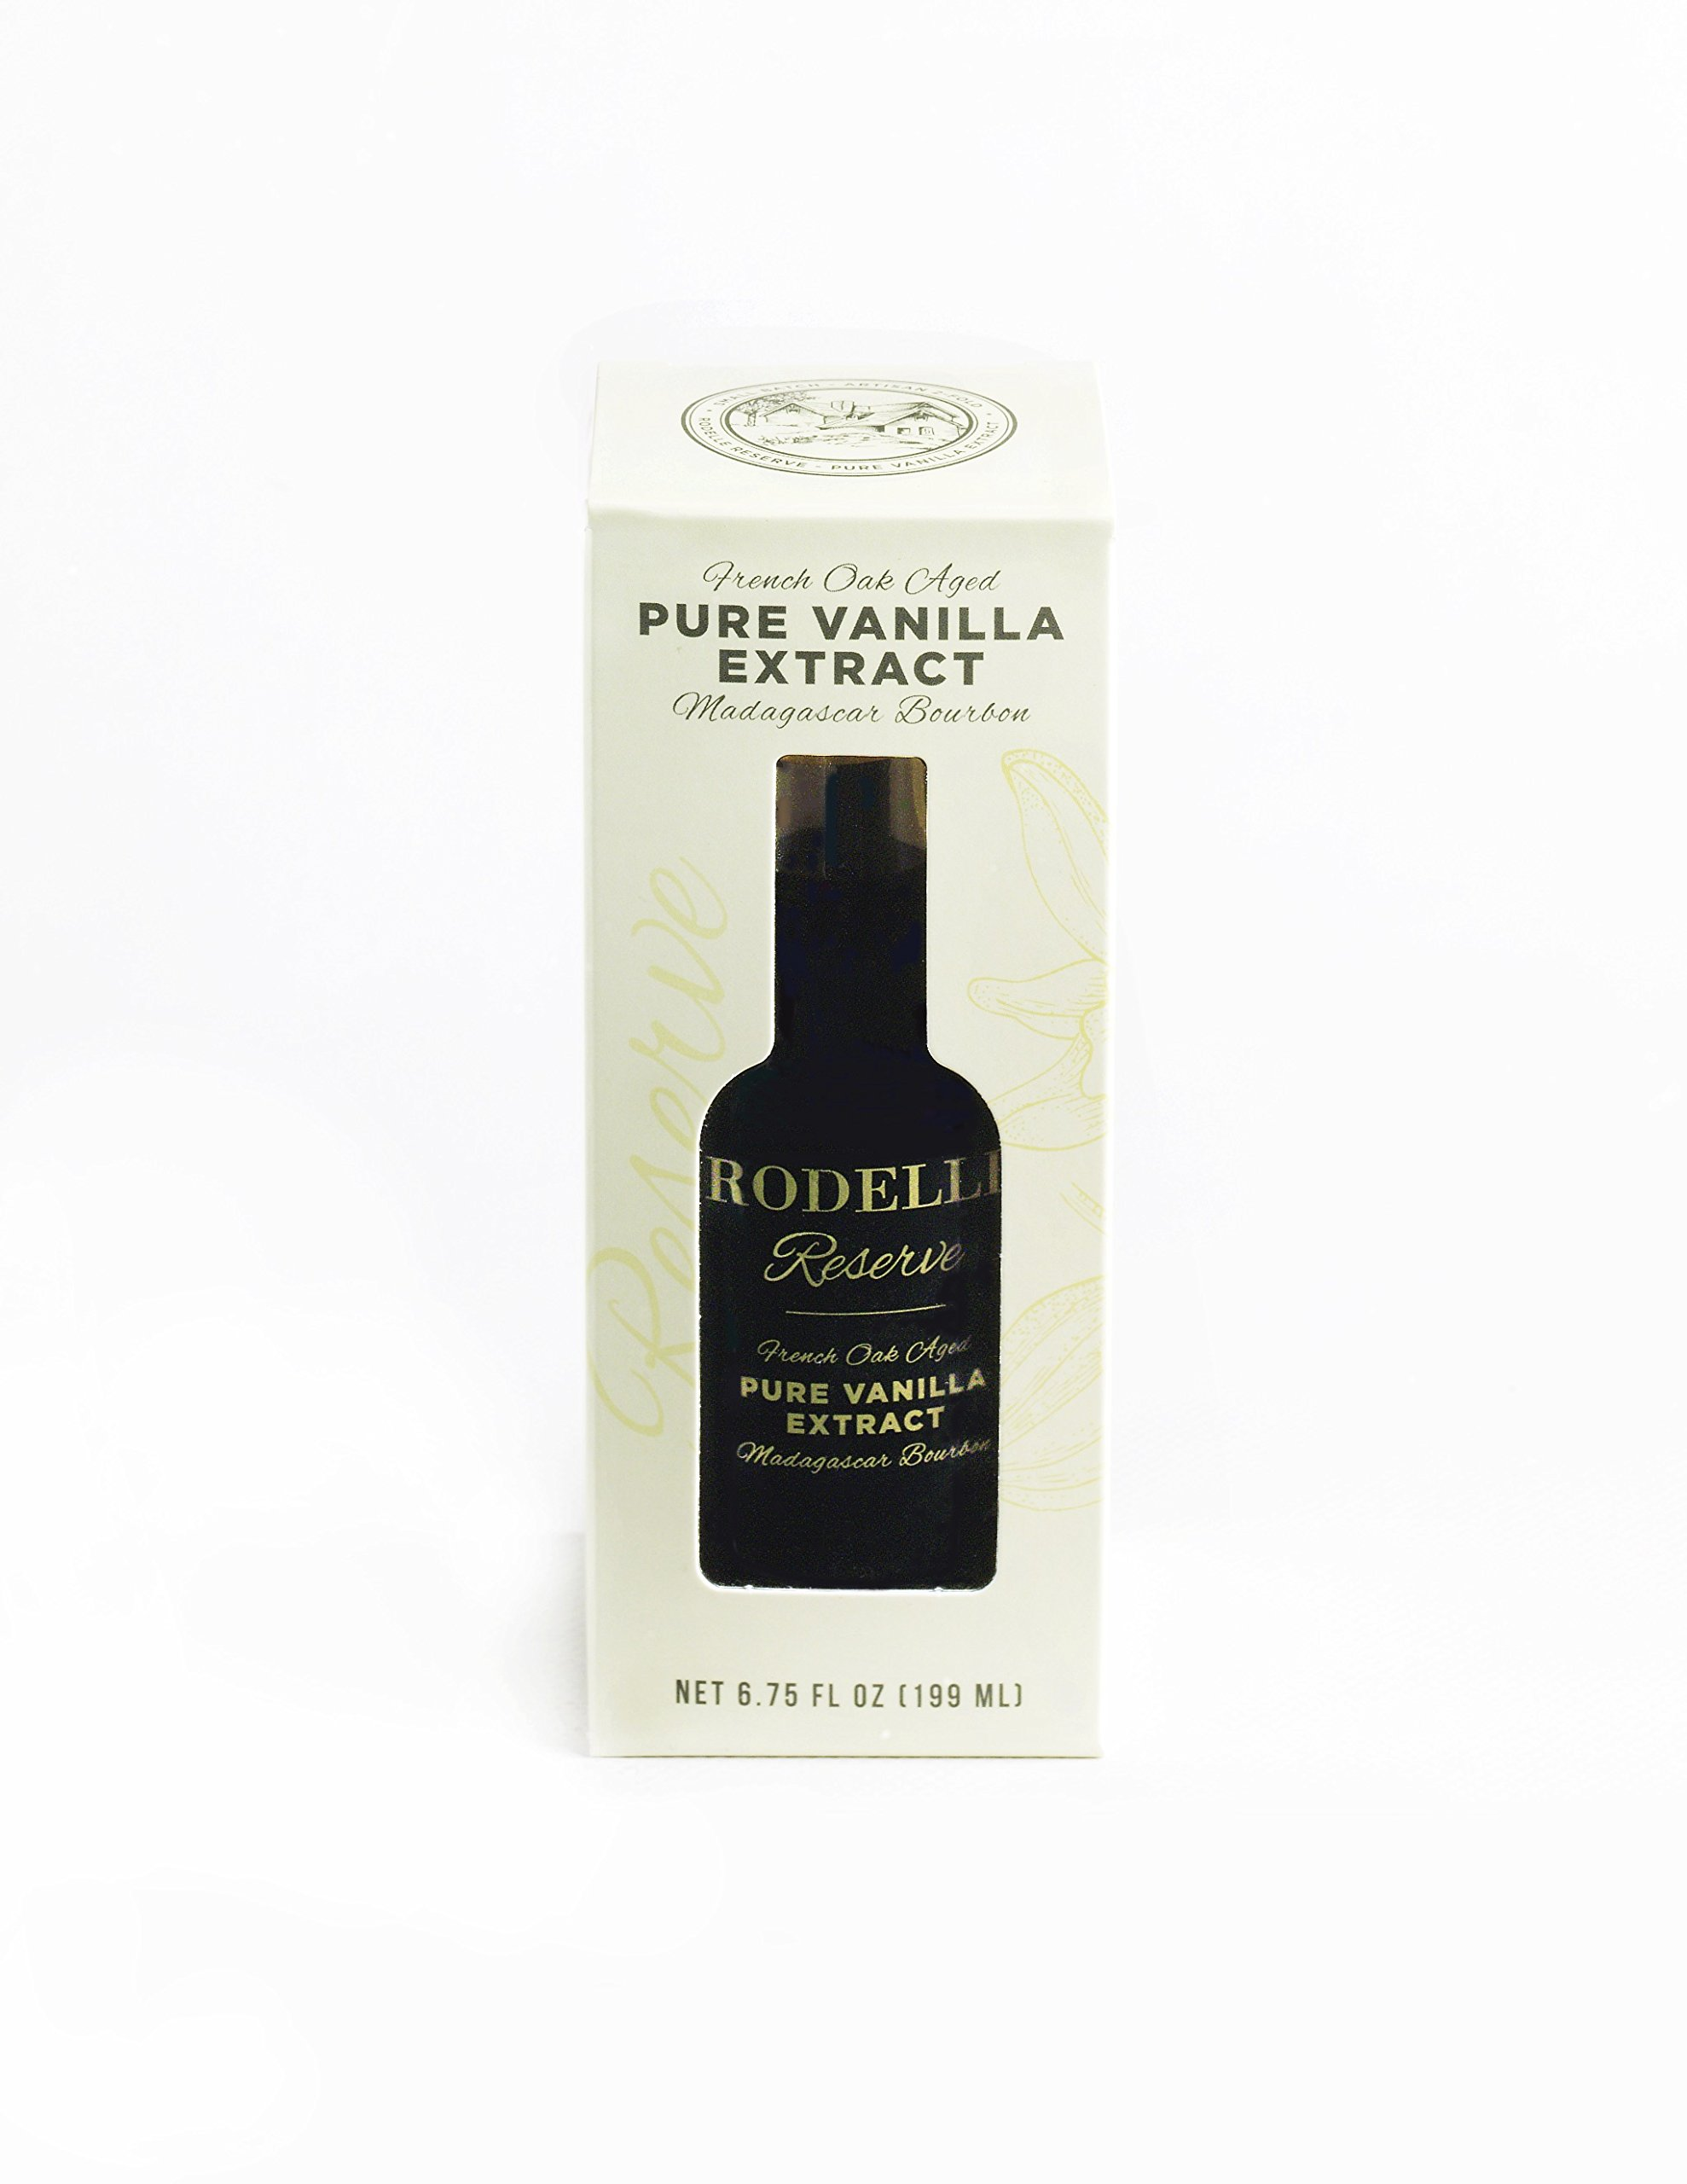 Rodelle Reserve Pure Vanilla Extract, 6.75 Oz, Madagascar Bourbon, Double Fold, Aged in French Oak, Contains Gourmet Vanilla Bean, Gift Box Included by Rodelle (Image #3)